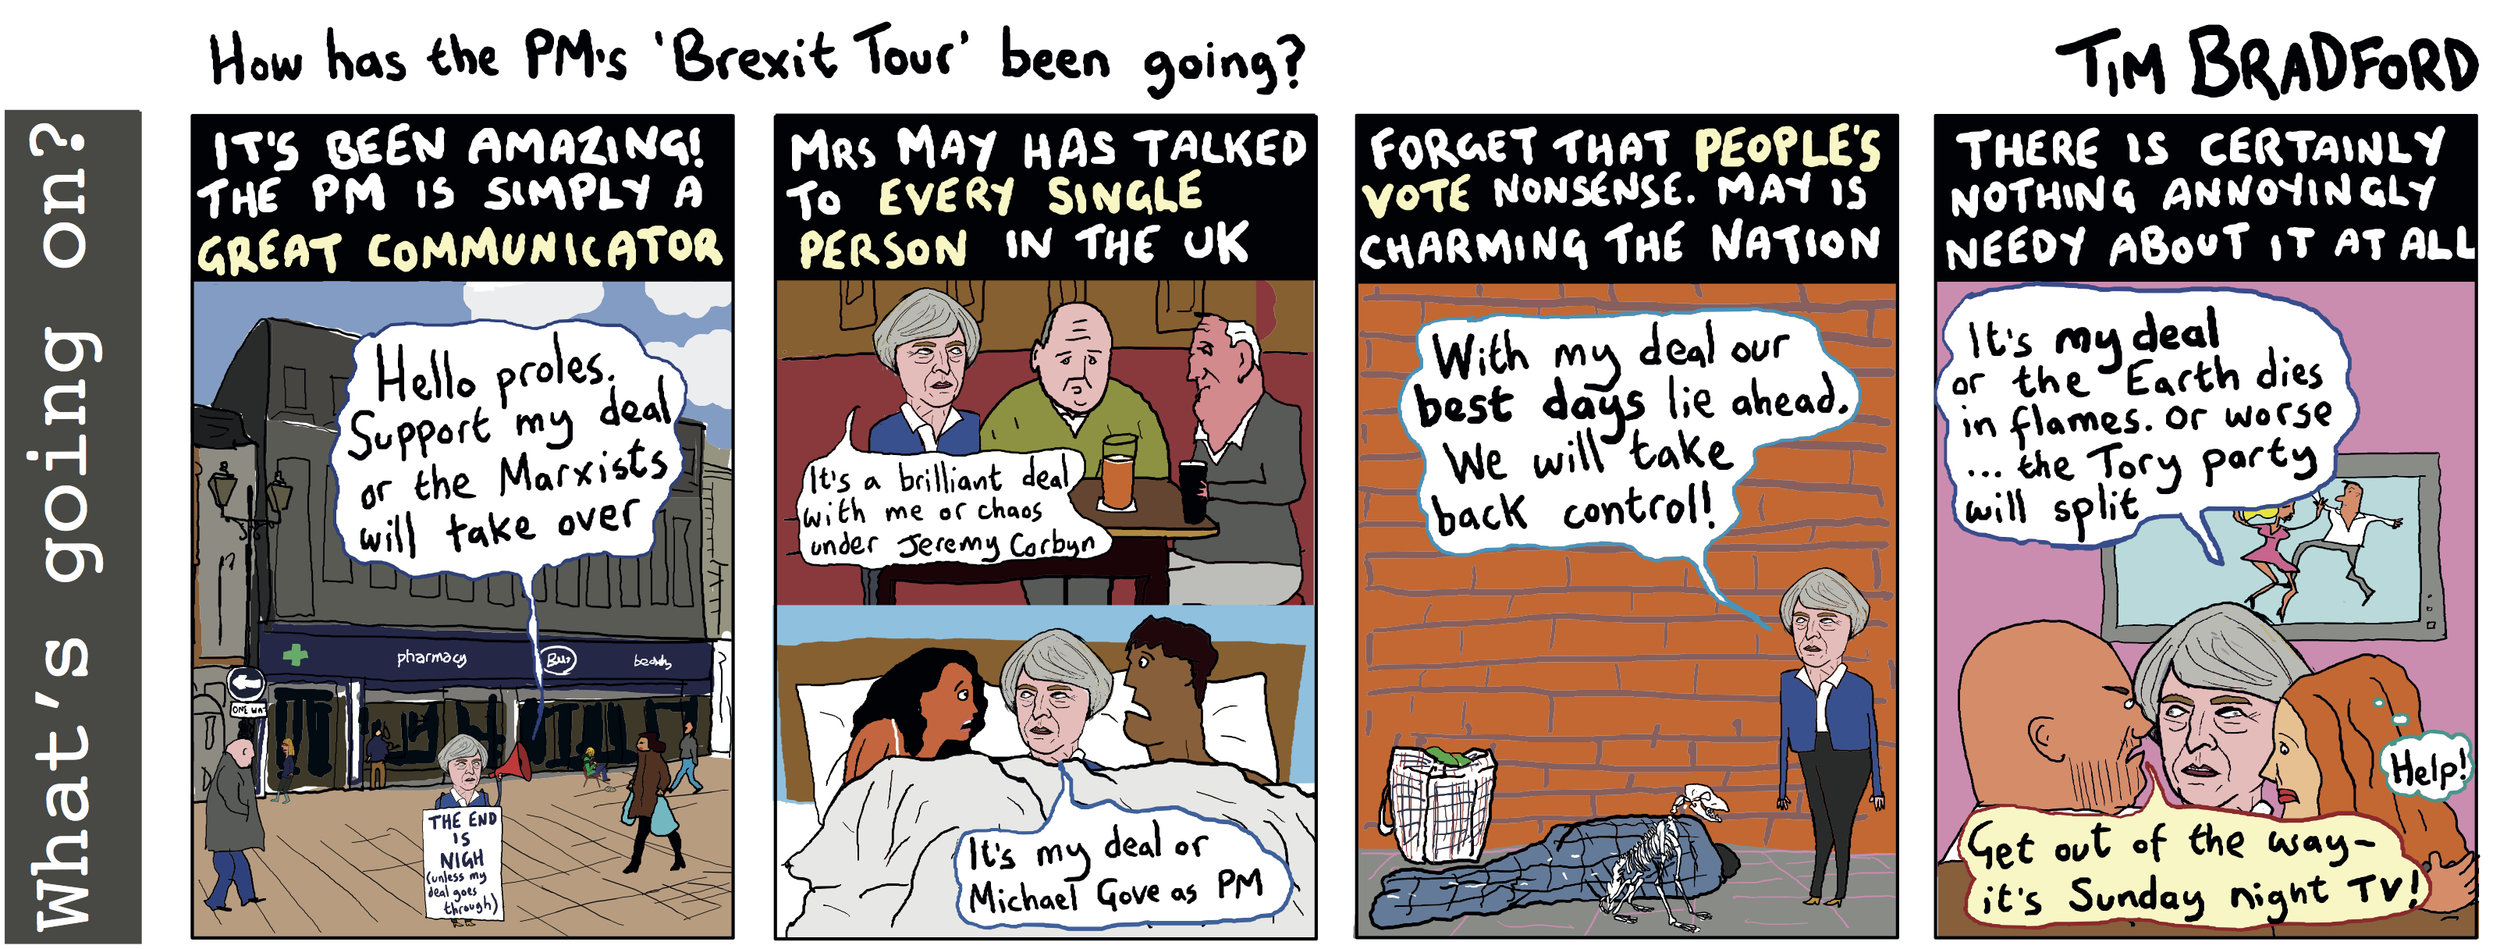 How has the PM's 'Brexit tour' been going? - 04/12/2018